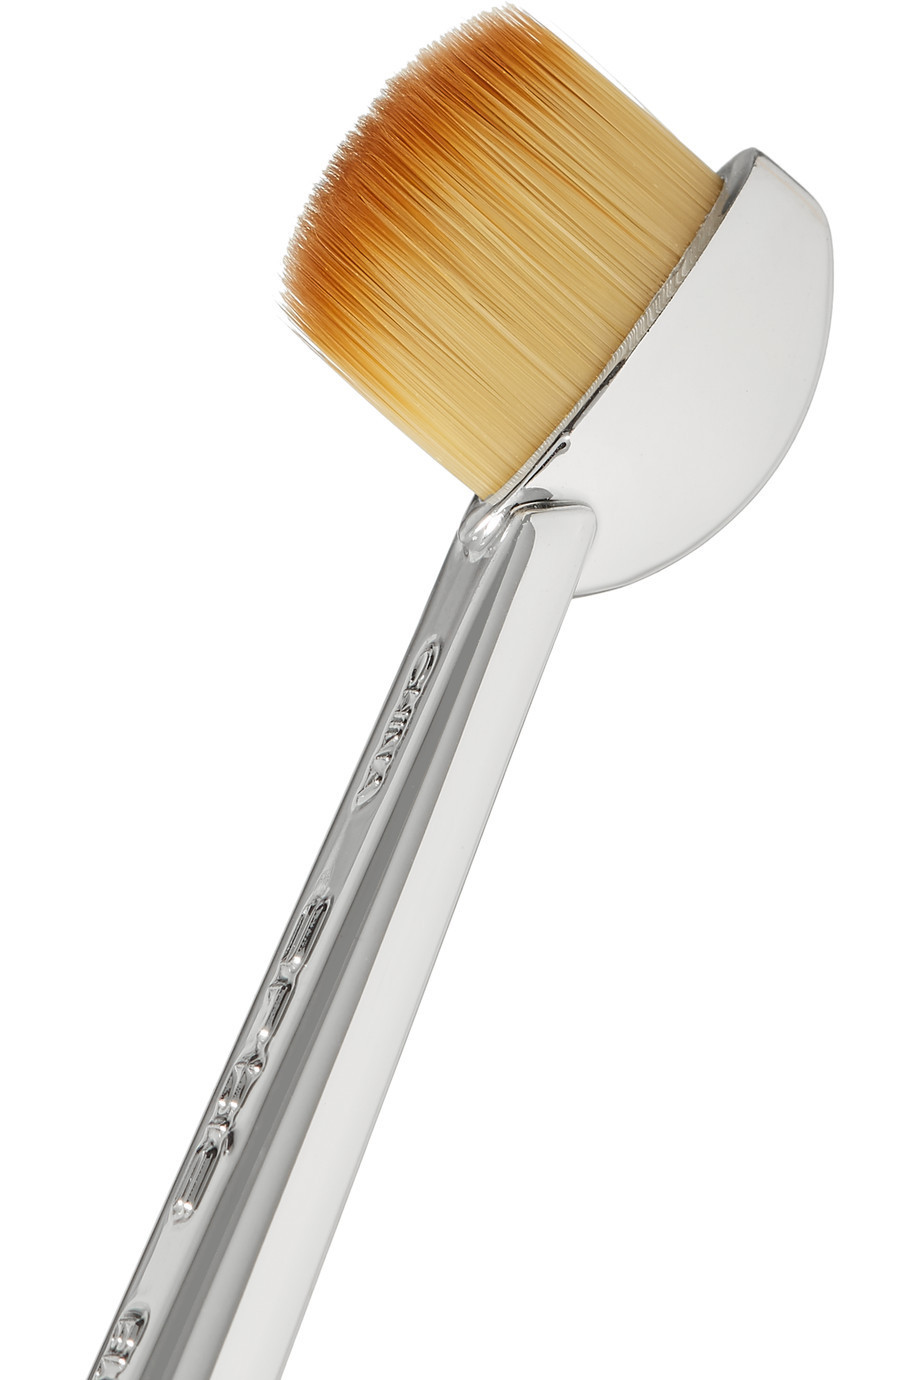 ARTIS BRUSH Elite Mirror / Elite Smoke Linear 3 Demi Brush